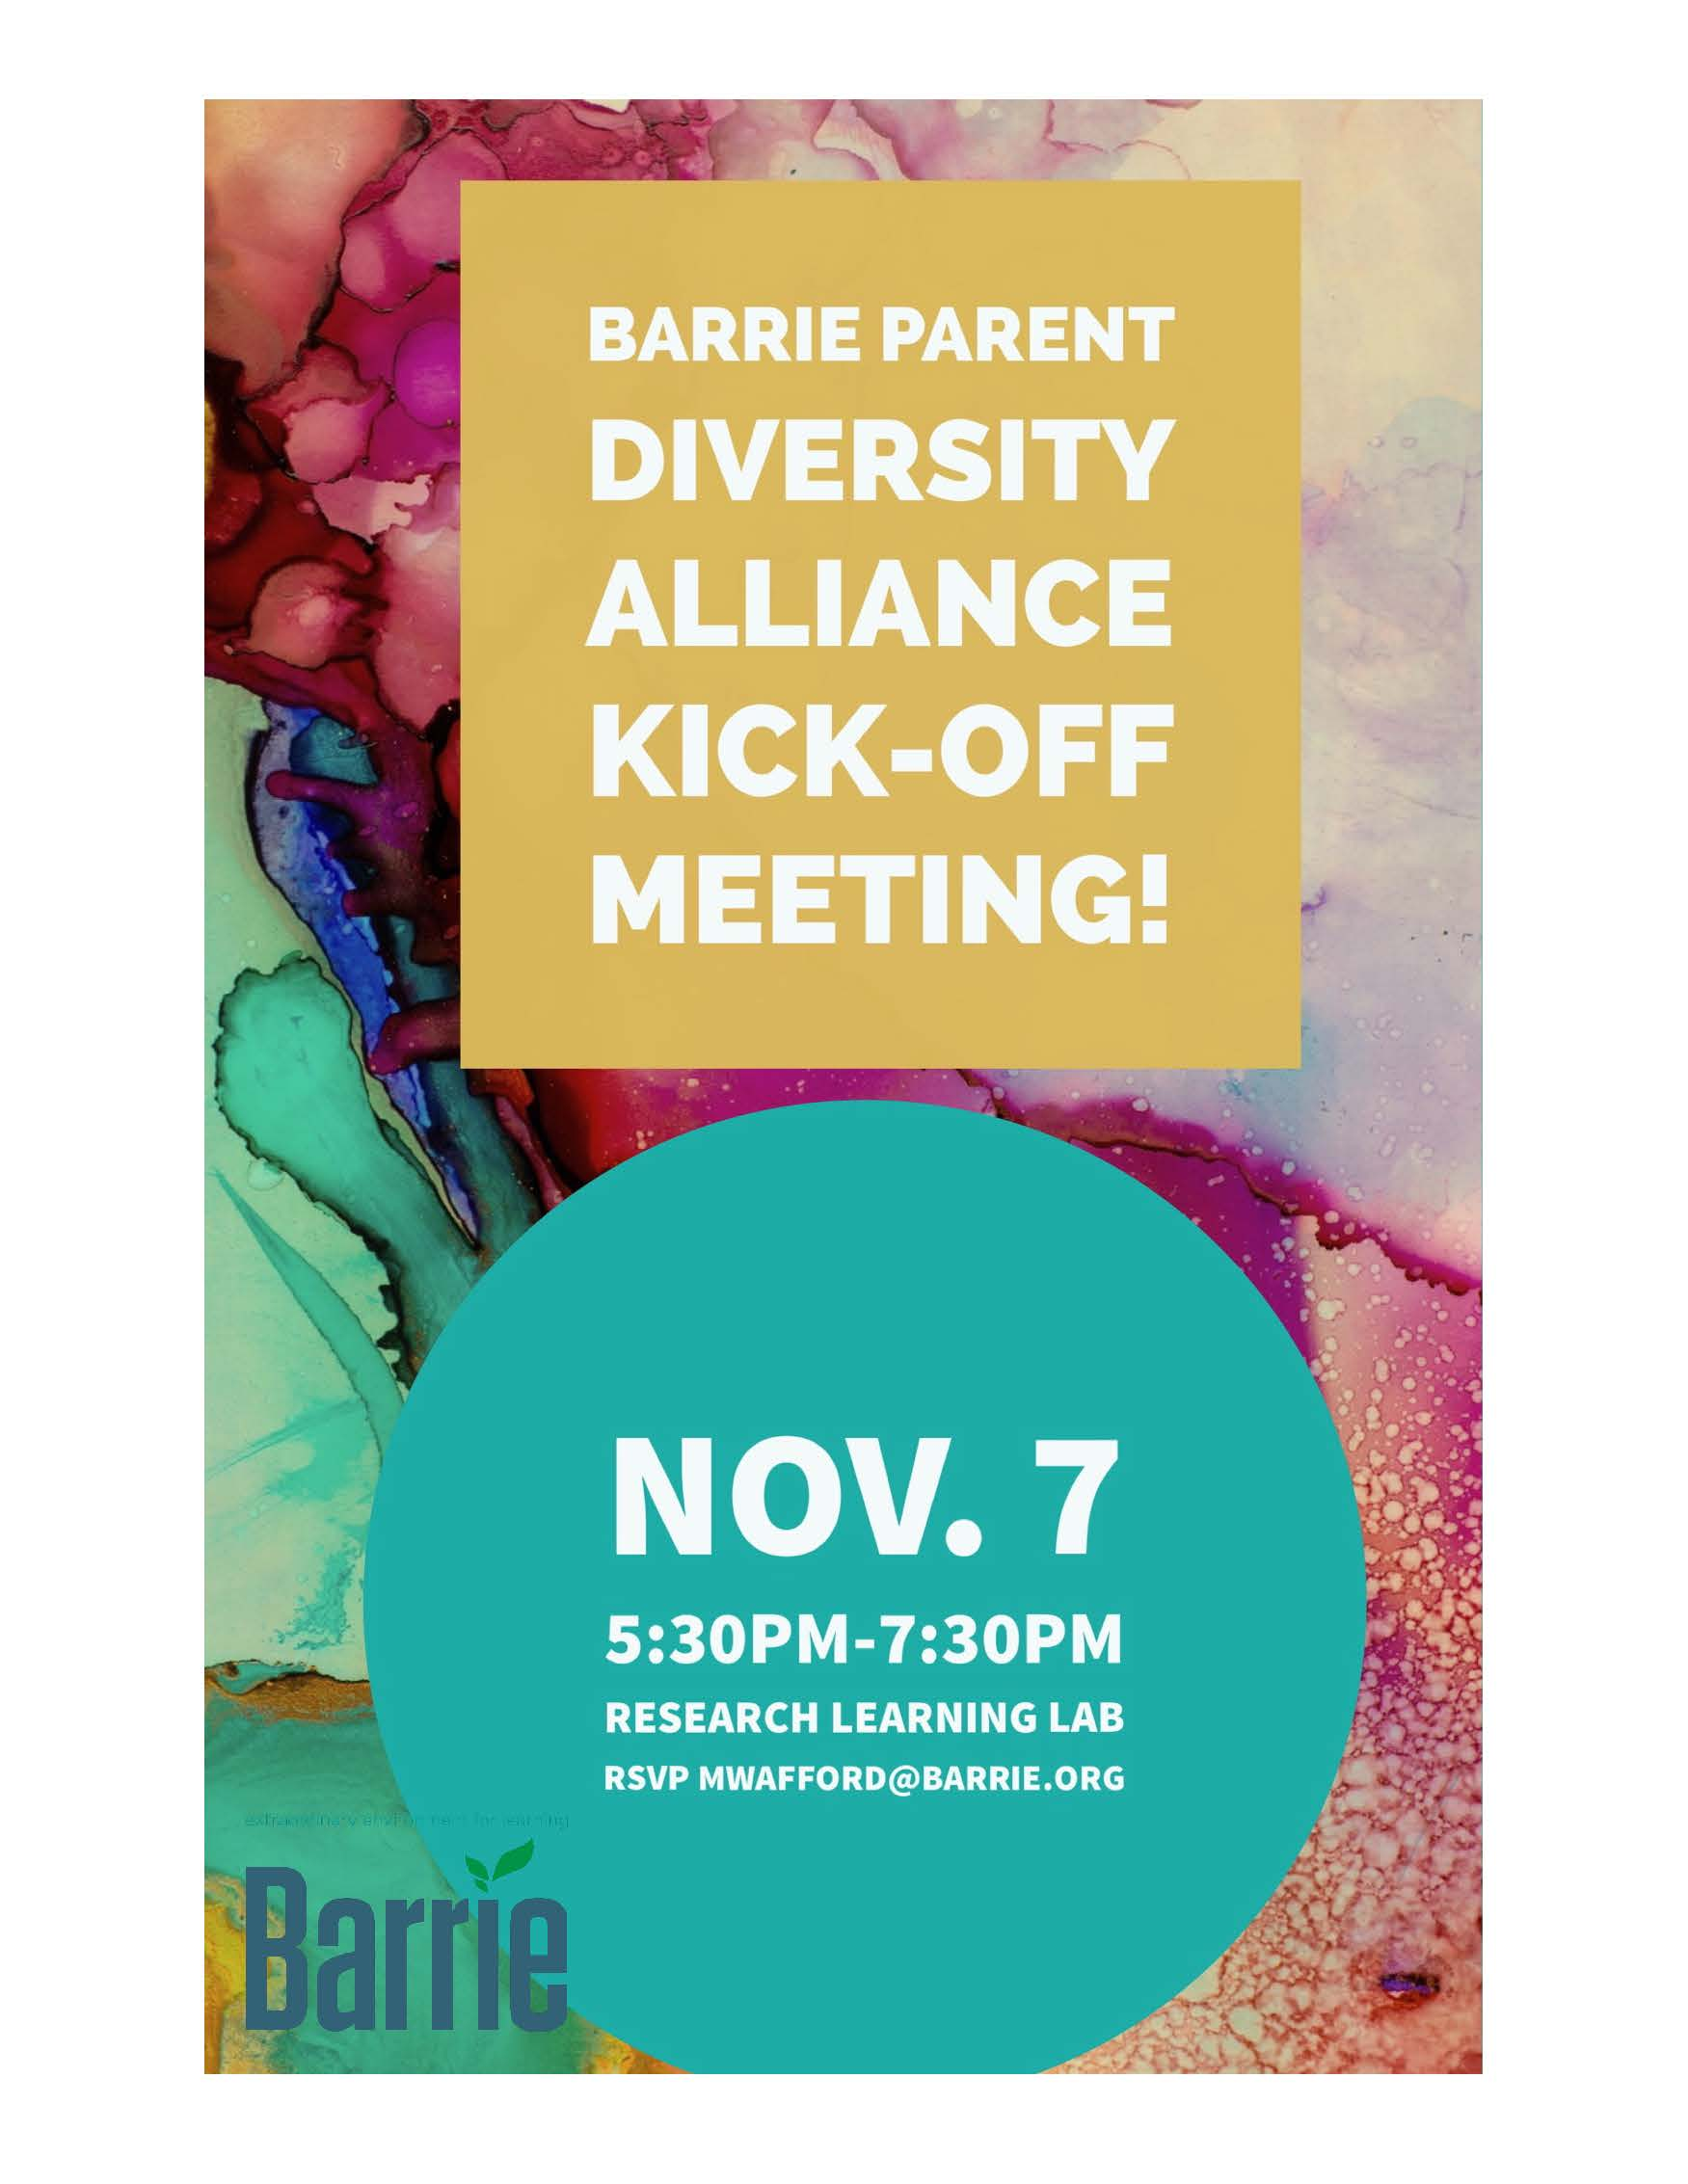 Barrie Parent Diversity Alliance